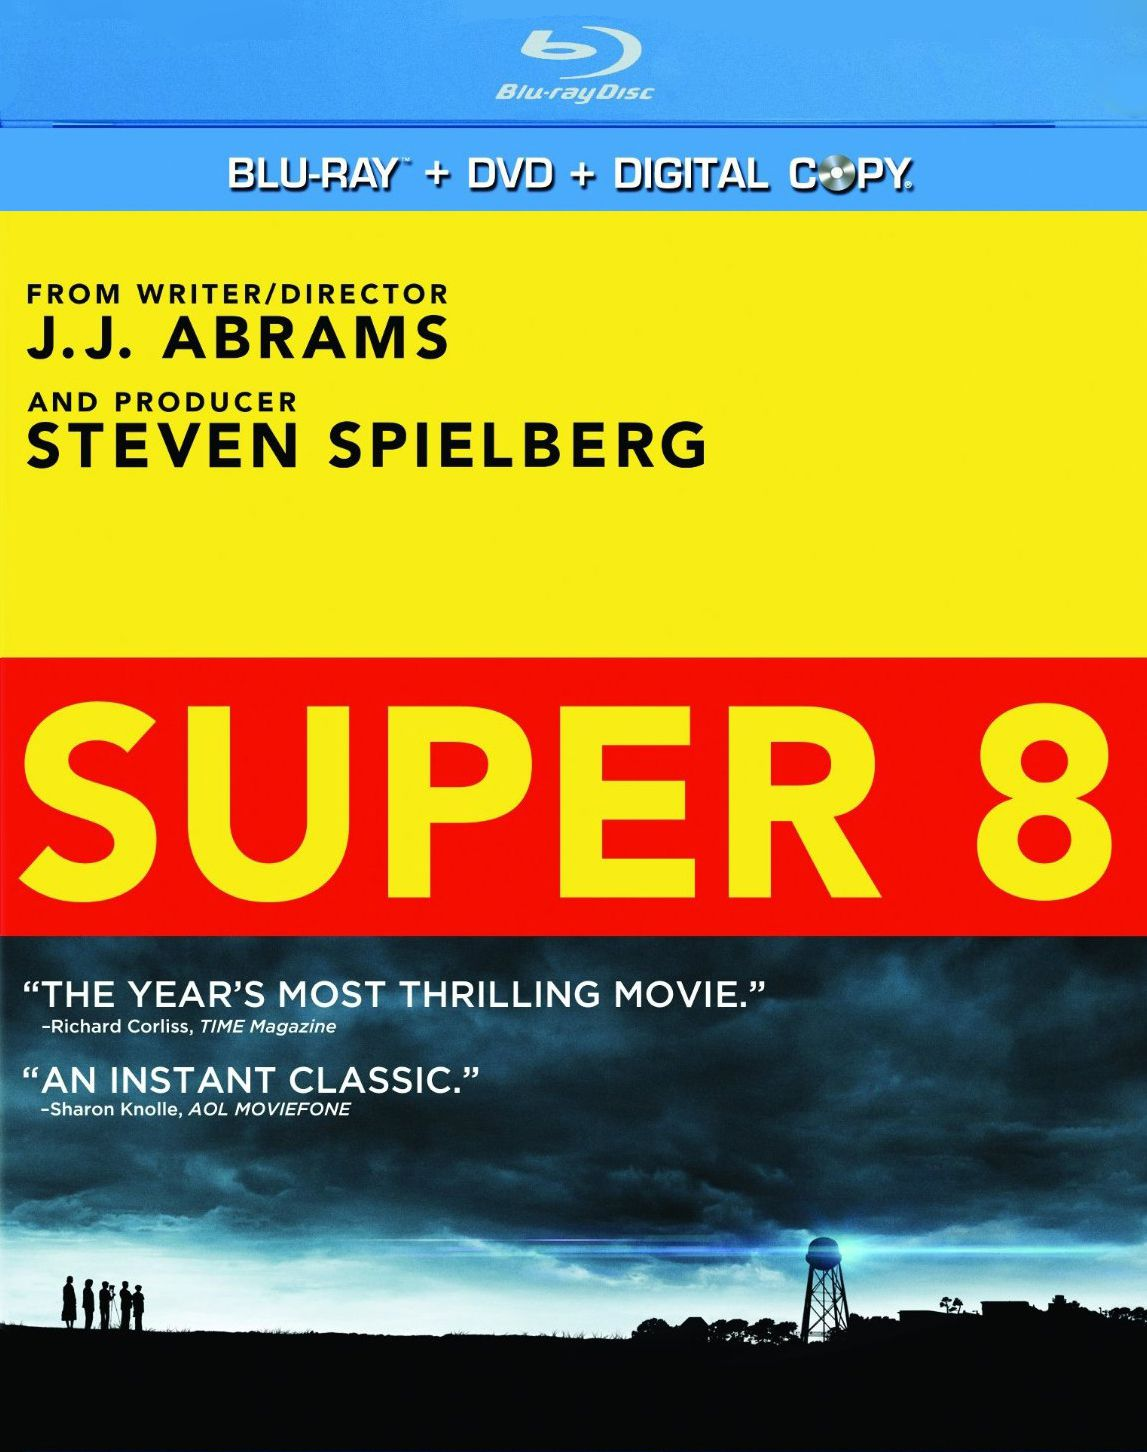 Publicity still for Super 8